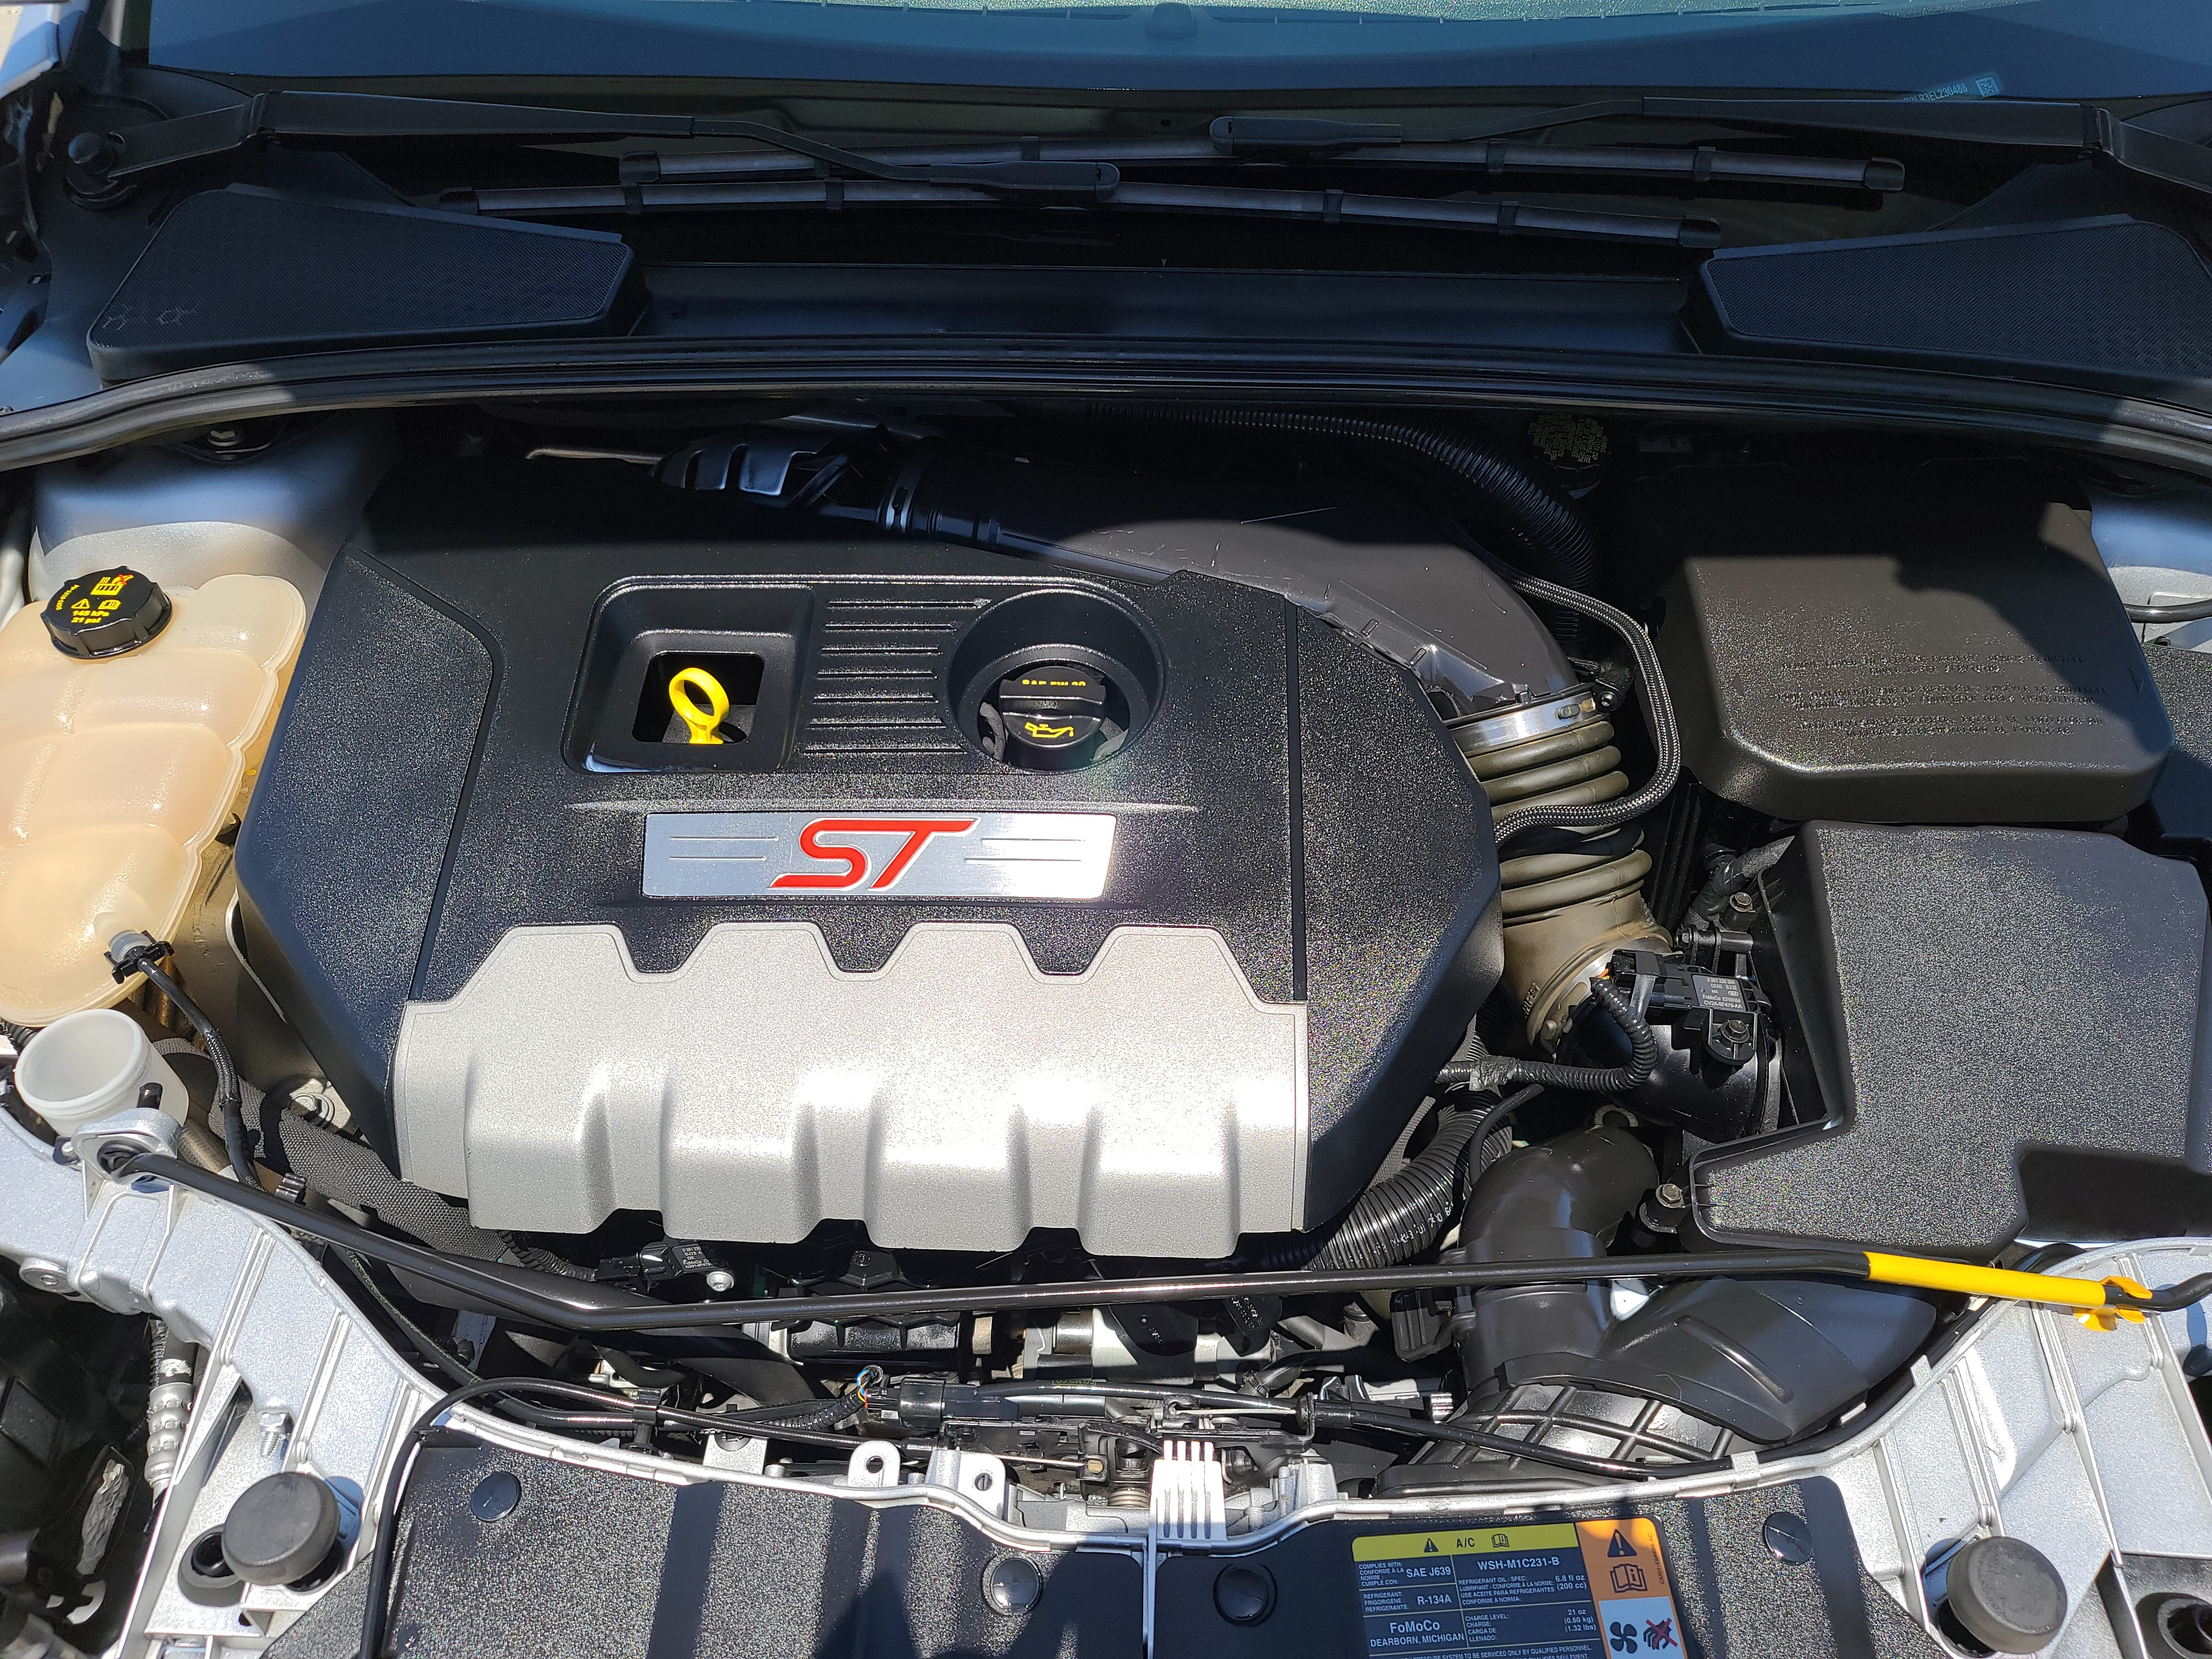 ENGINE COMPARTMENT DETAIL